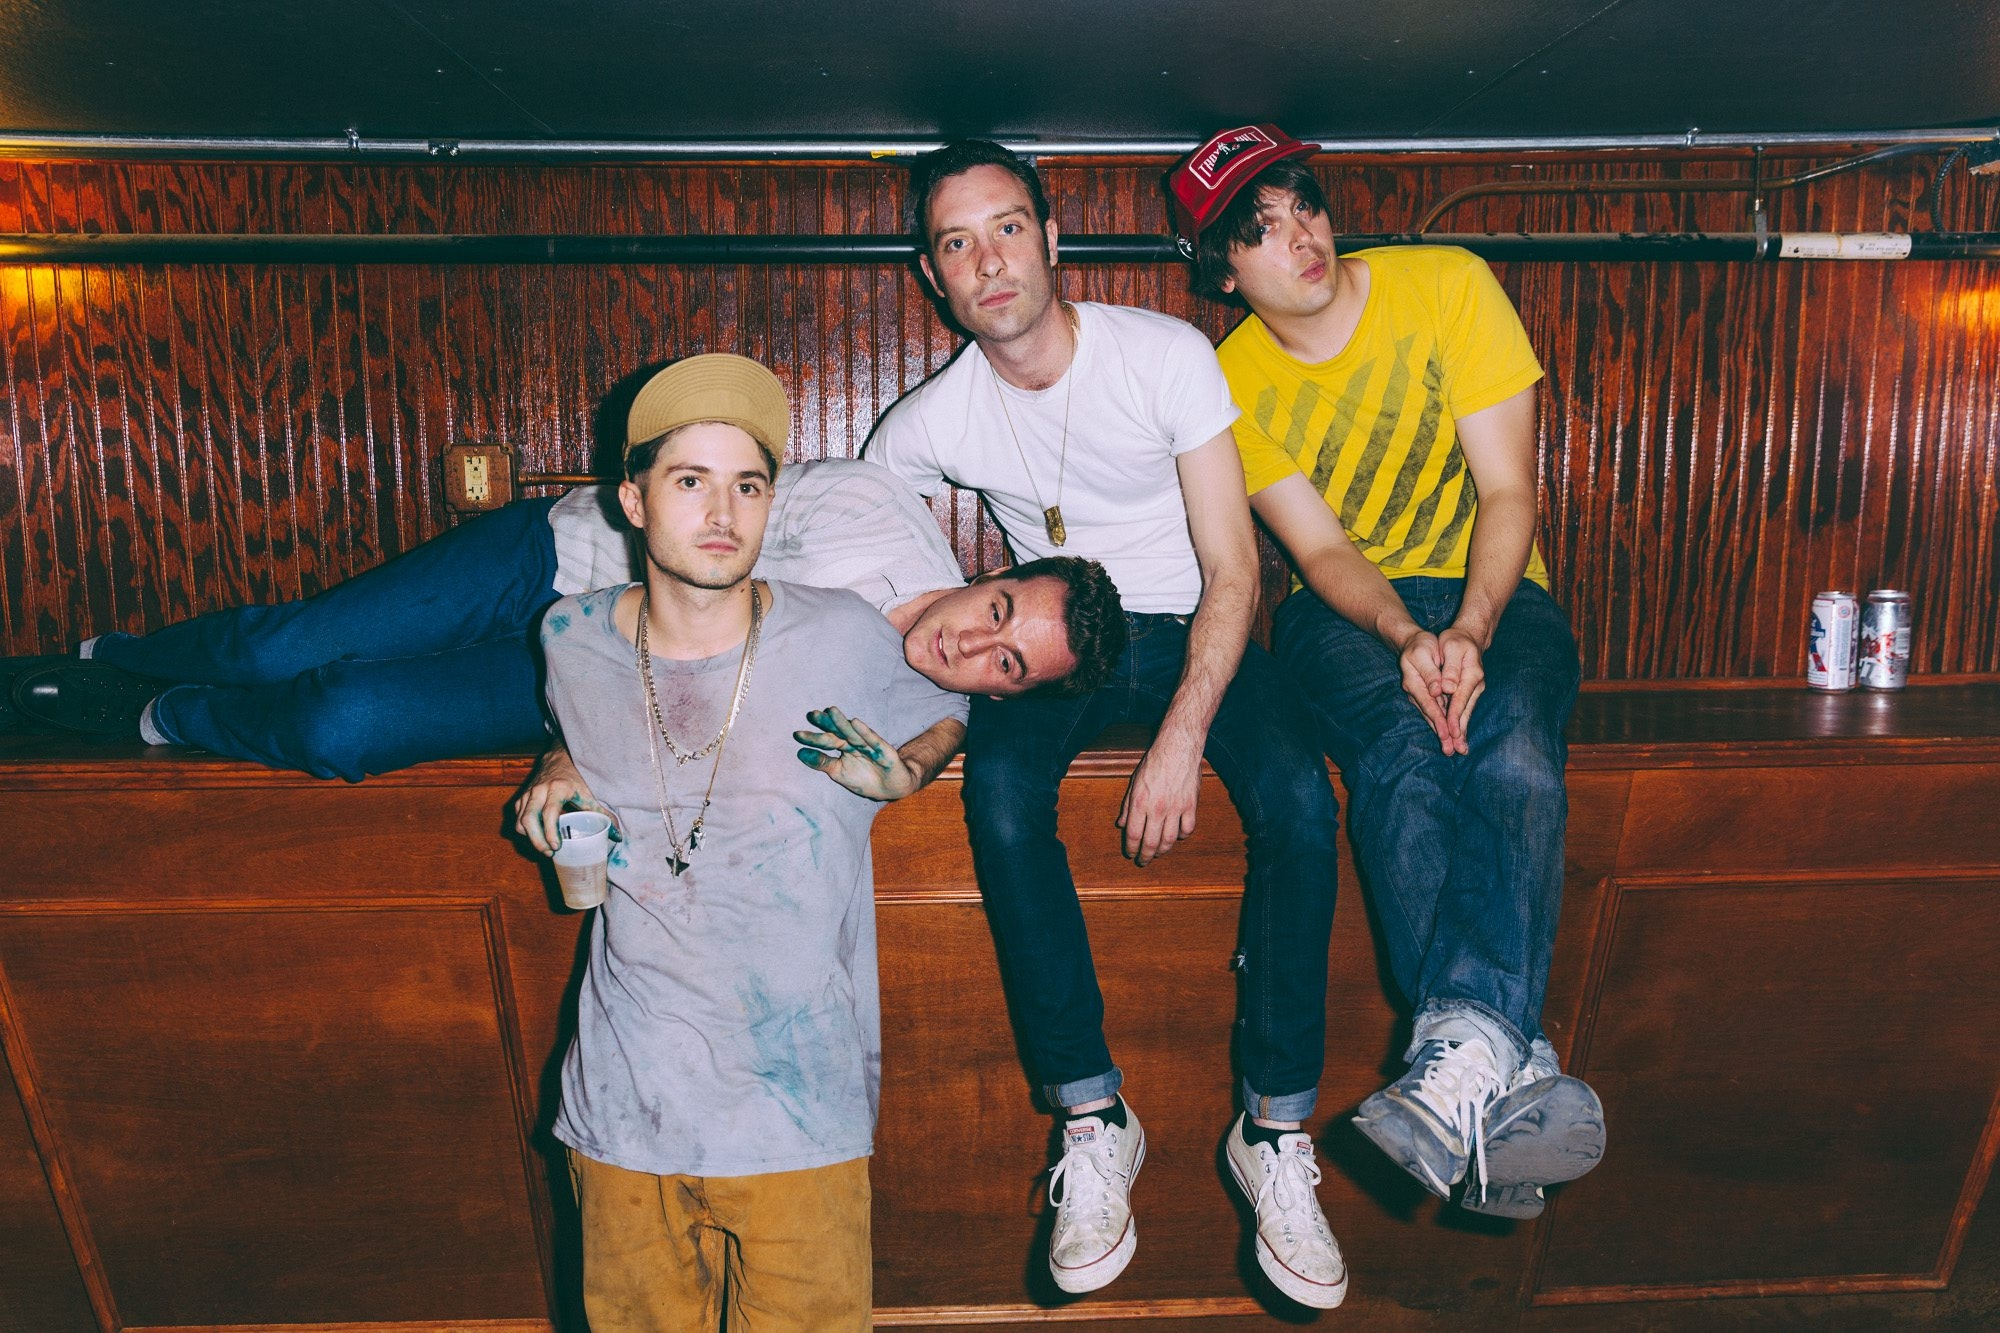 Black Lips has matured since coming together in 1999.